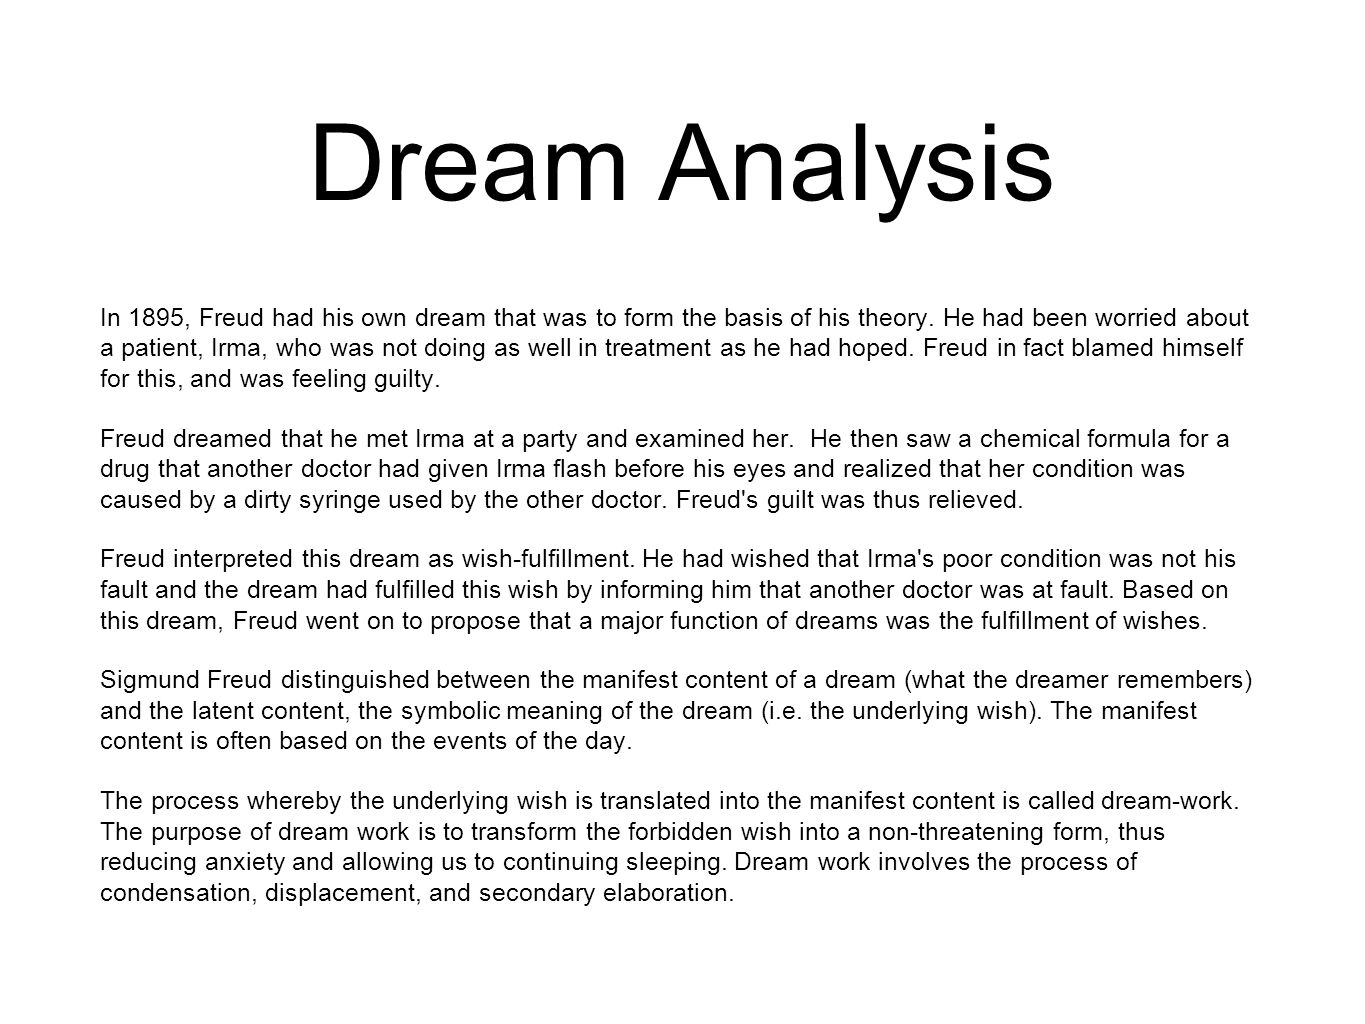 016 Research Paper Dreamanalysis Psychology Topics On Rare Dreams Articles Papers Full